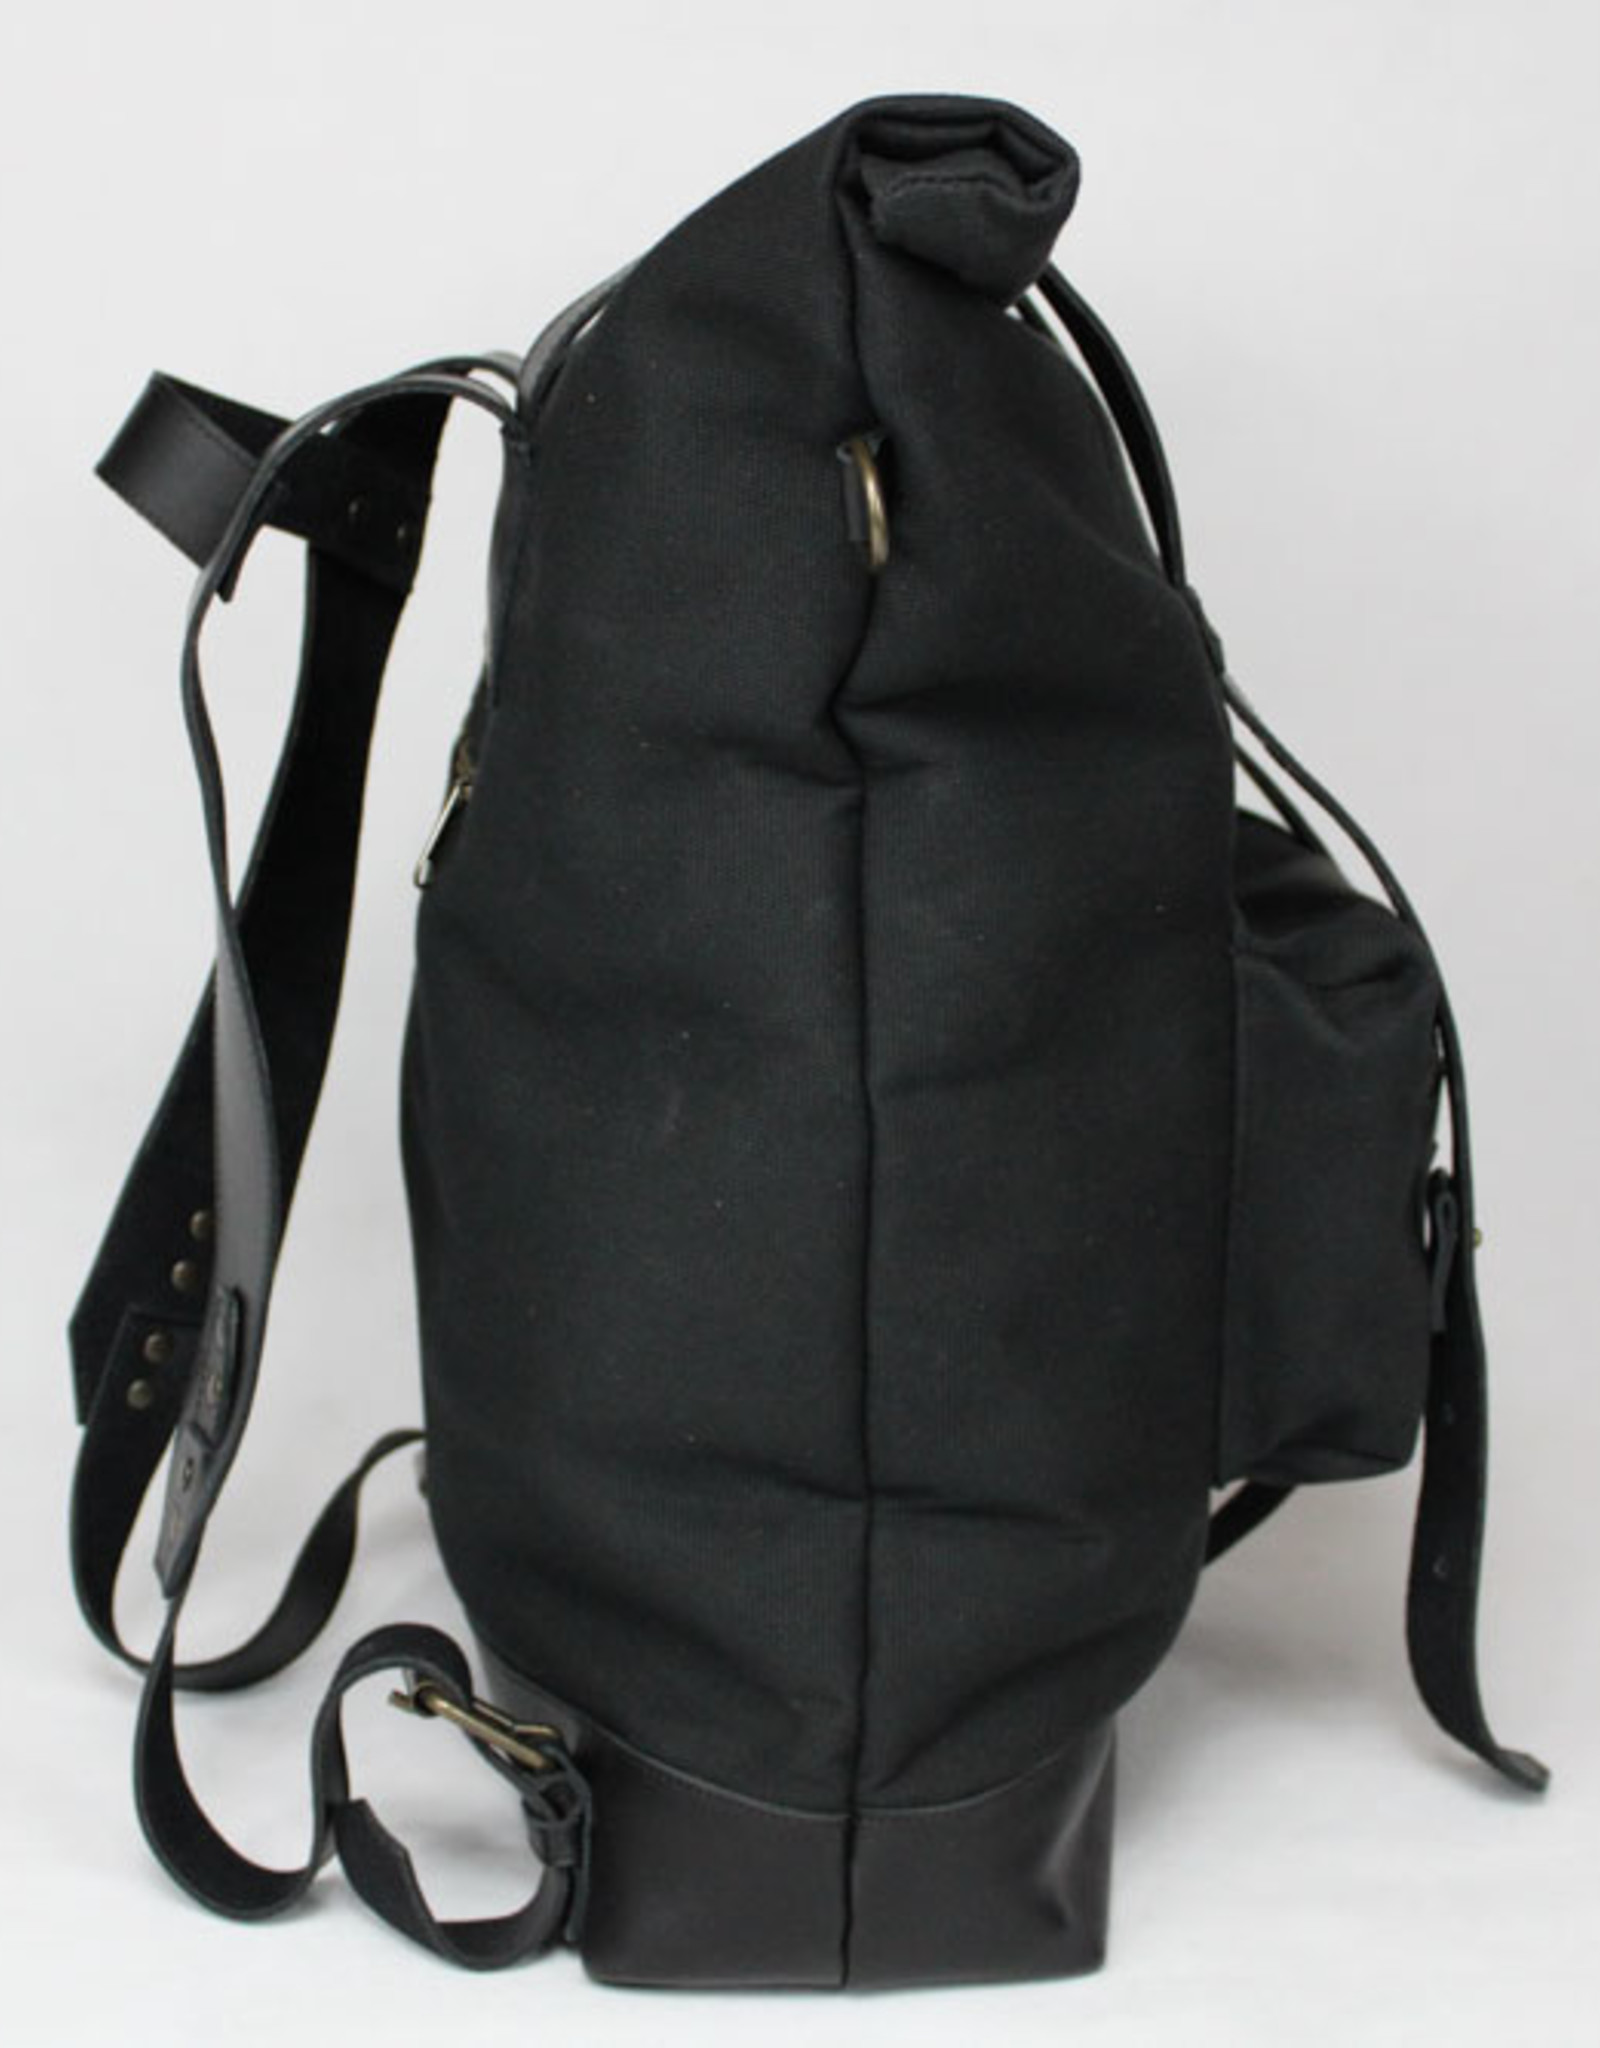 MONTE BLANCO 04 ANDES BACKPACK CANVAS Y PIEL NEGRO, MONTE BLANCO 04